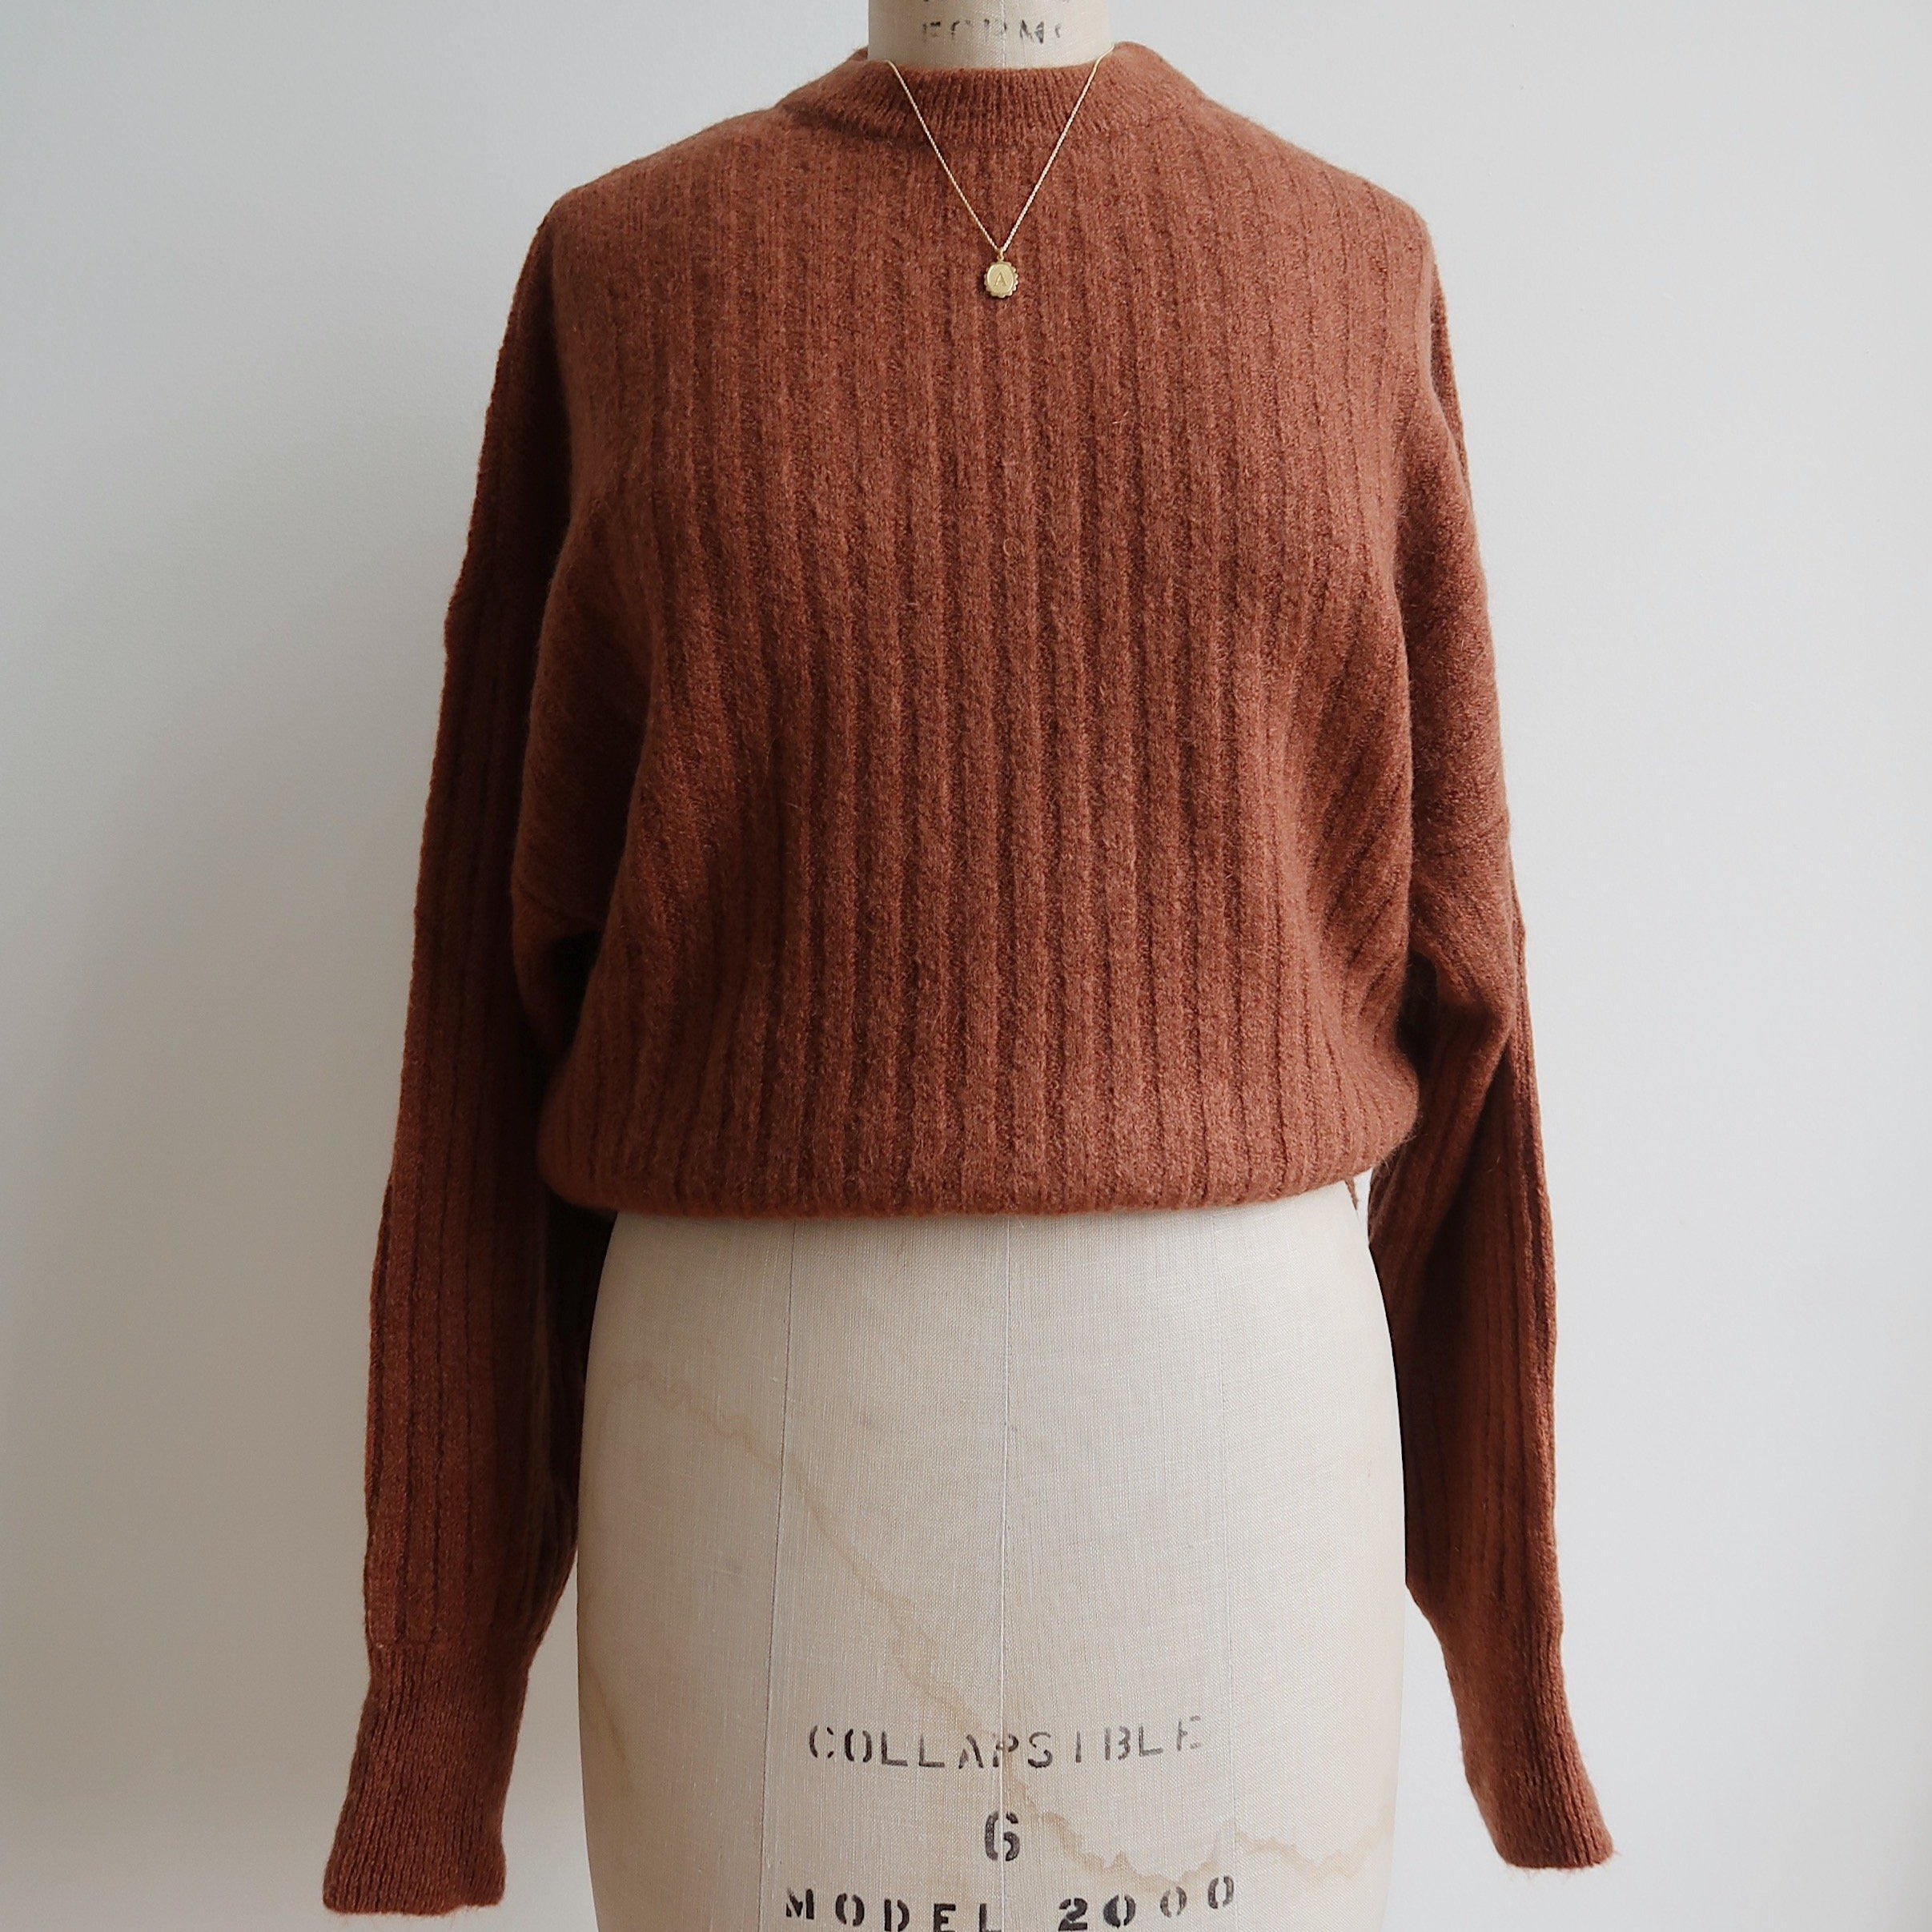 Edelie Knit Sweater